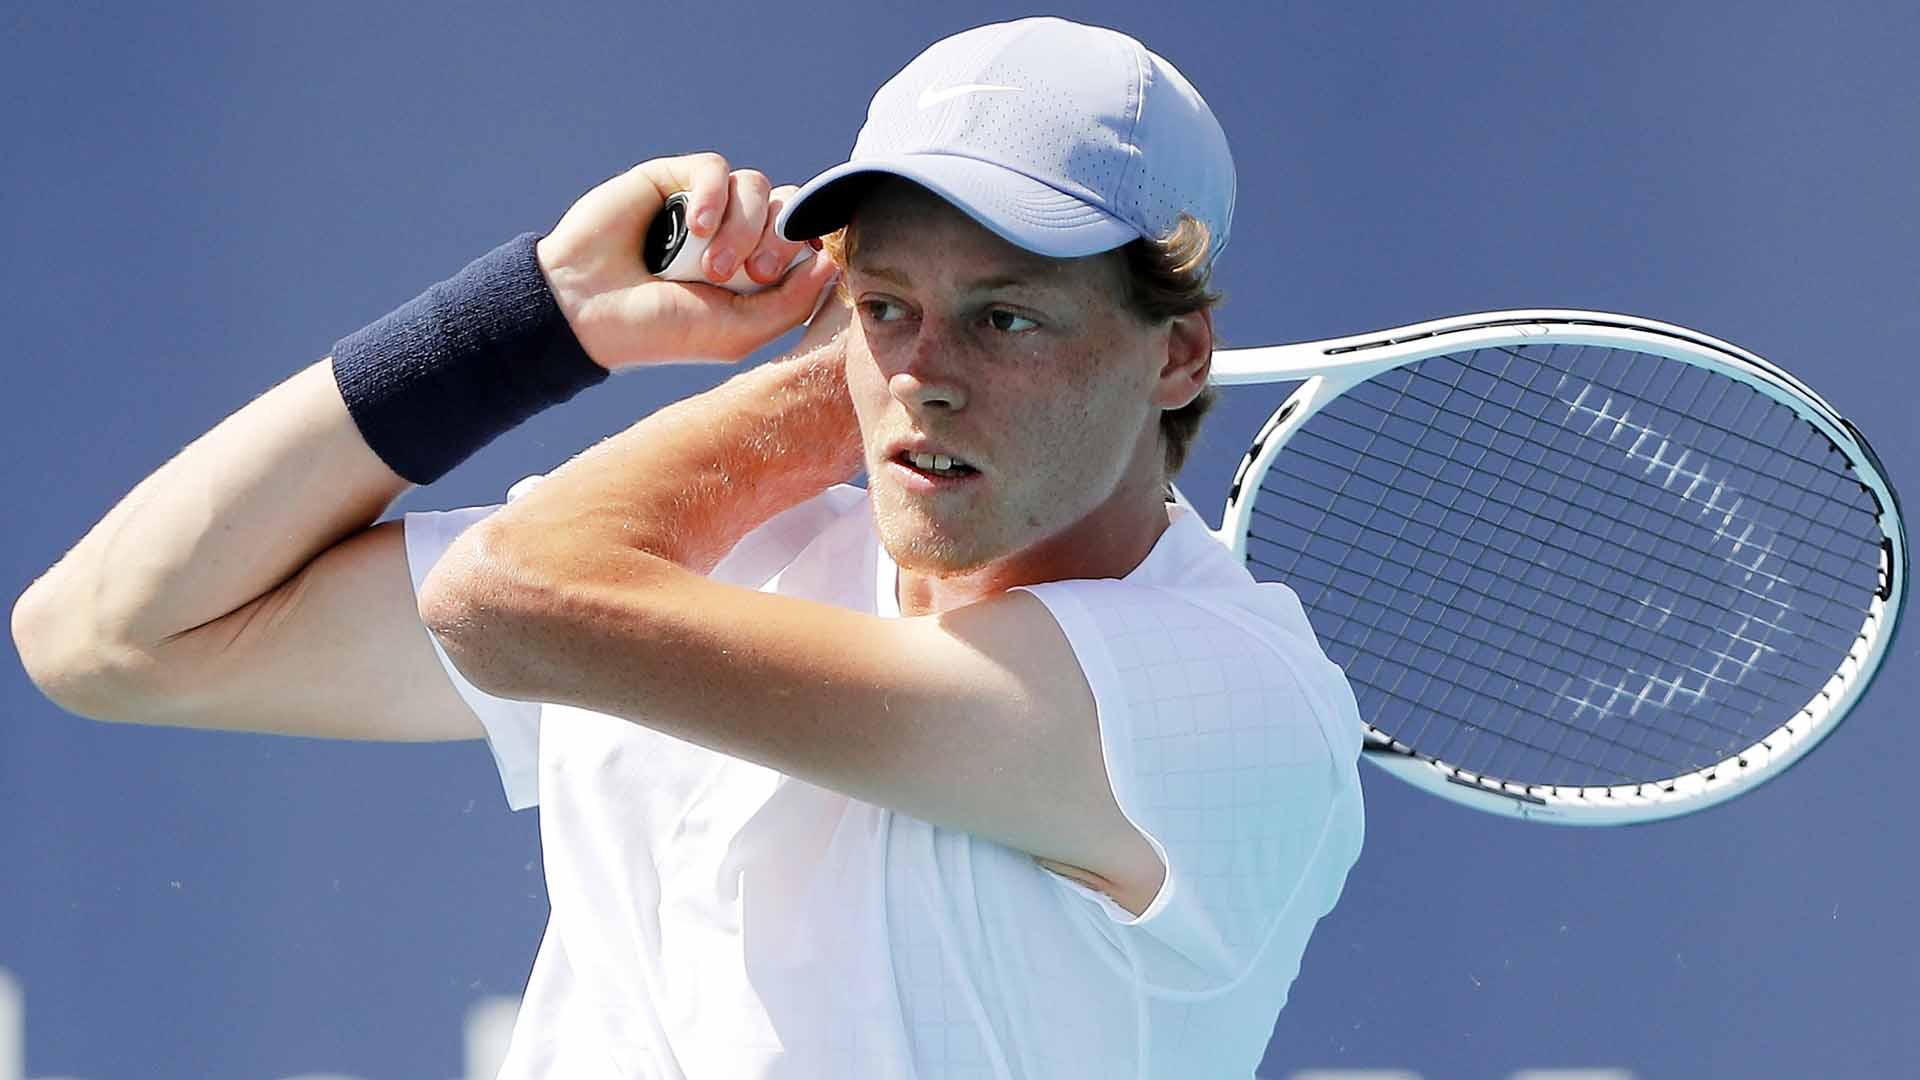 Jannik Sinner is making his debut at the Miami Open presented by Itau this year.